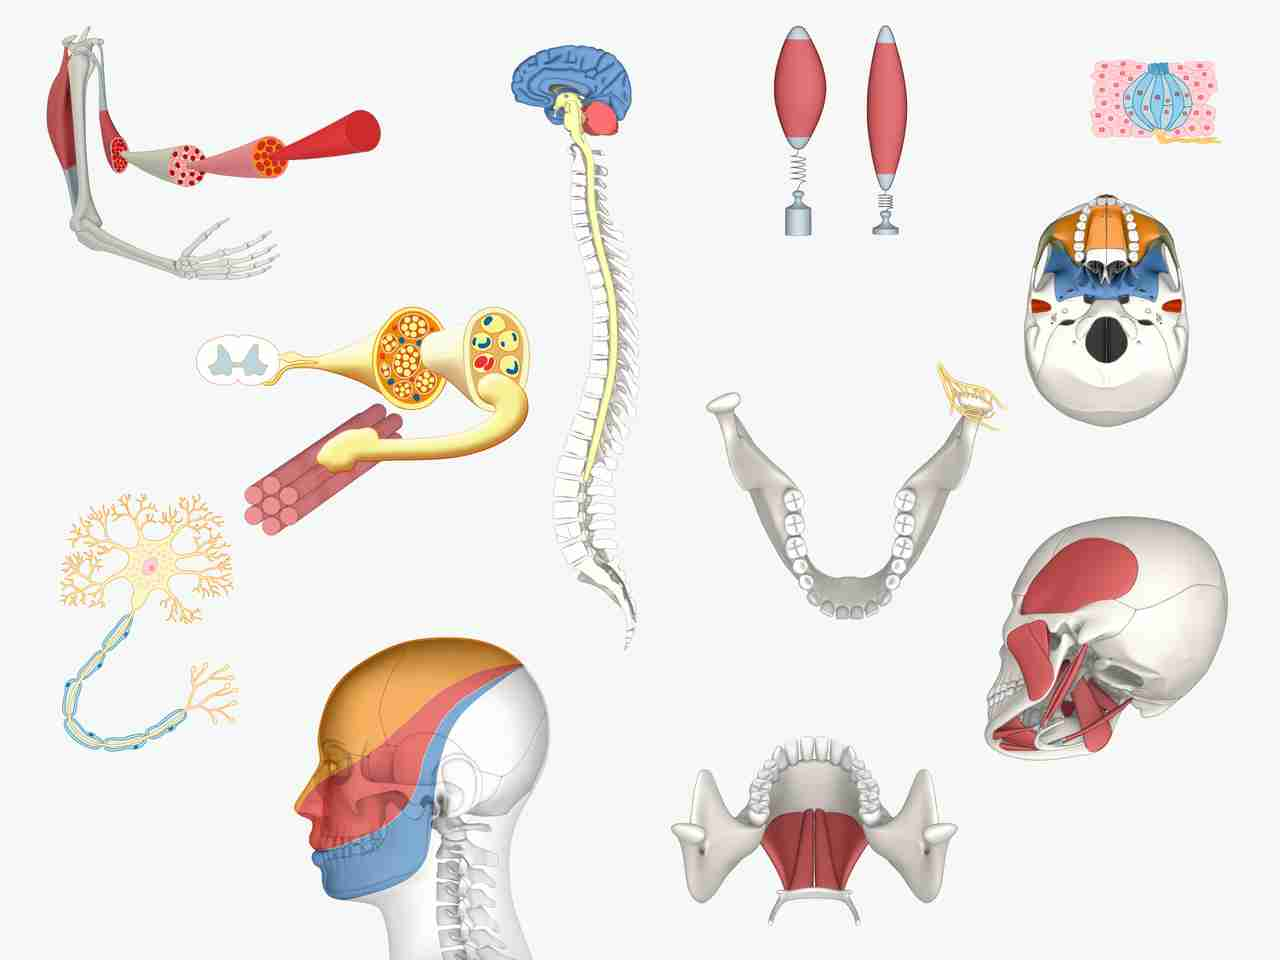 Anatomical Illustrations for eLearning